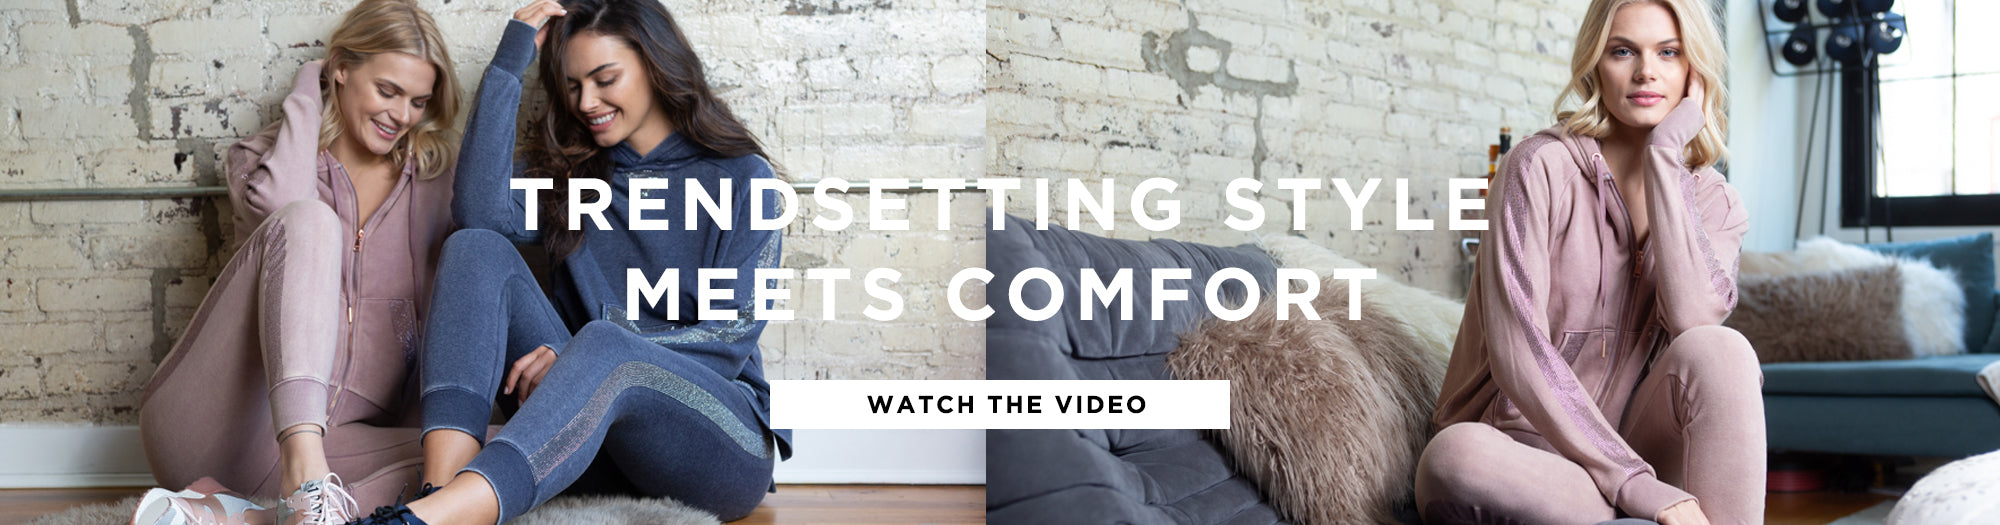 Trendsetting style meets comfort - watch video